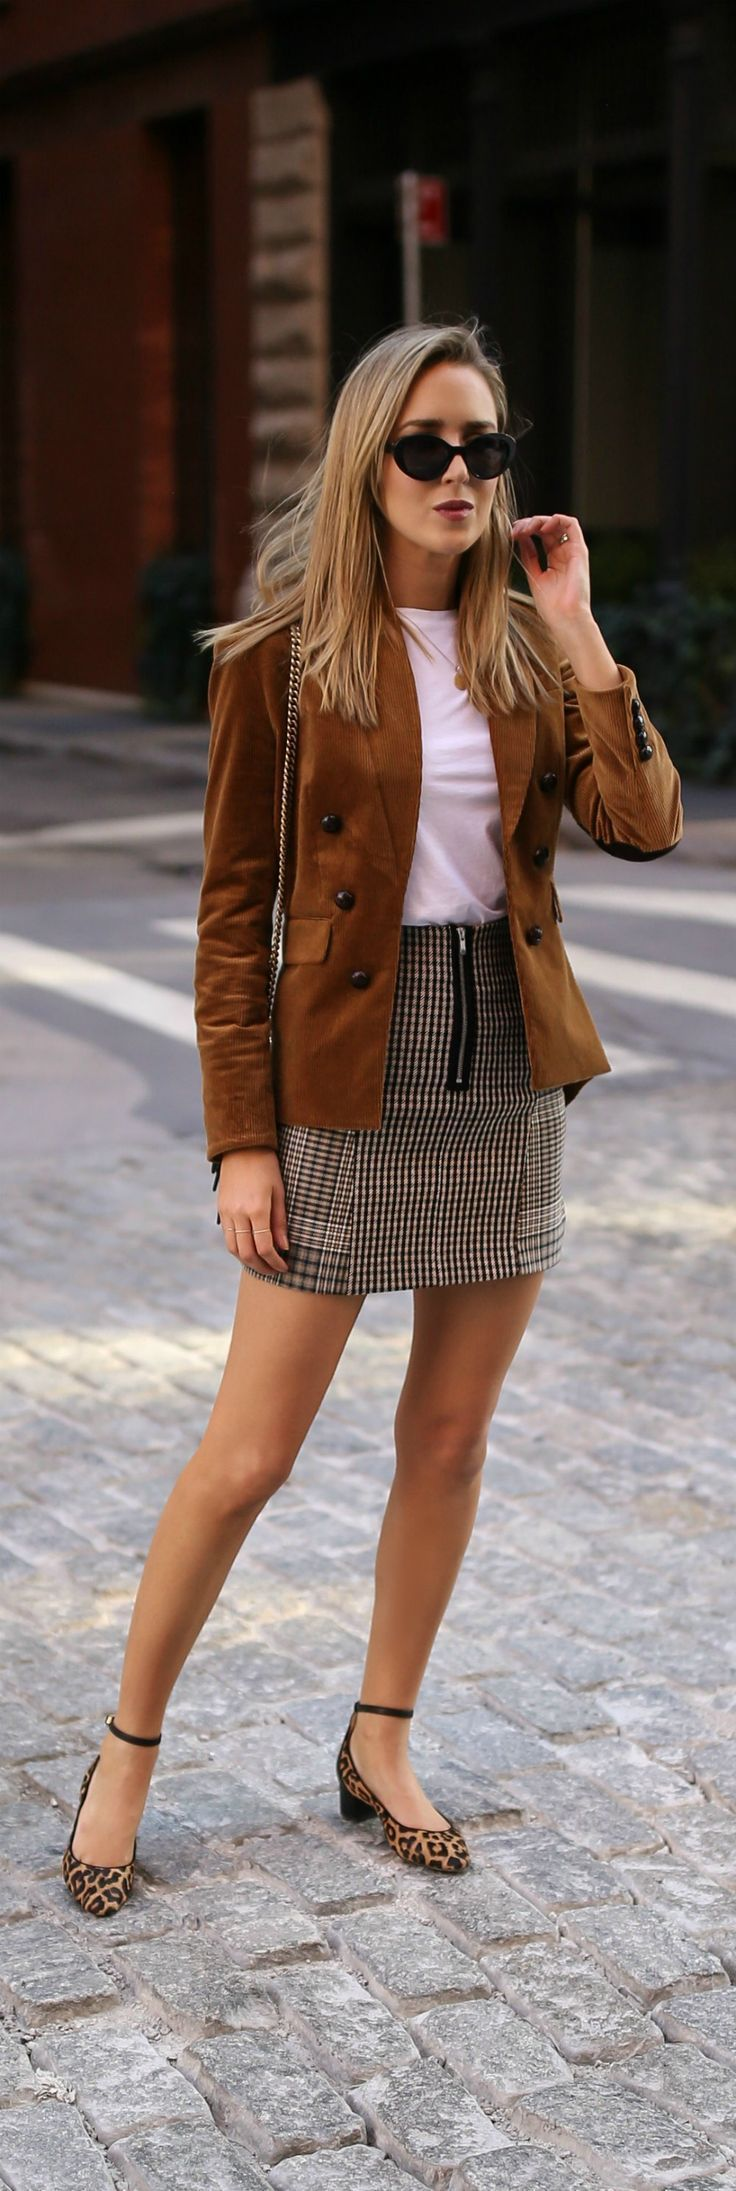 Click for outfit details!  Corduroy blazer, white short sleeve t-shirt, checked front zip mini skirt, leopard print ankle strap pumps {Veronica Beard, J Brand, Maje, fall winter trends, fall fashion, classic style, fashion trends}